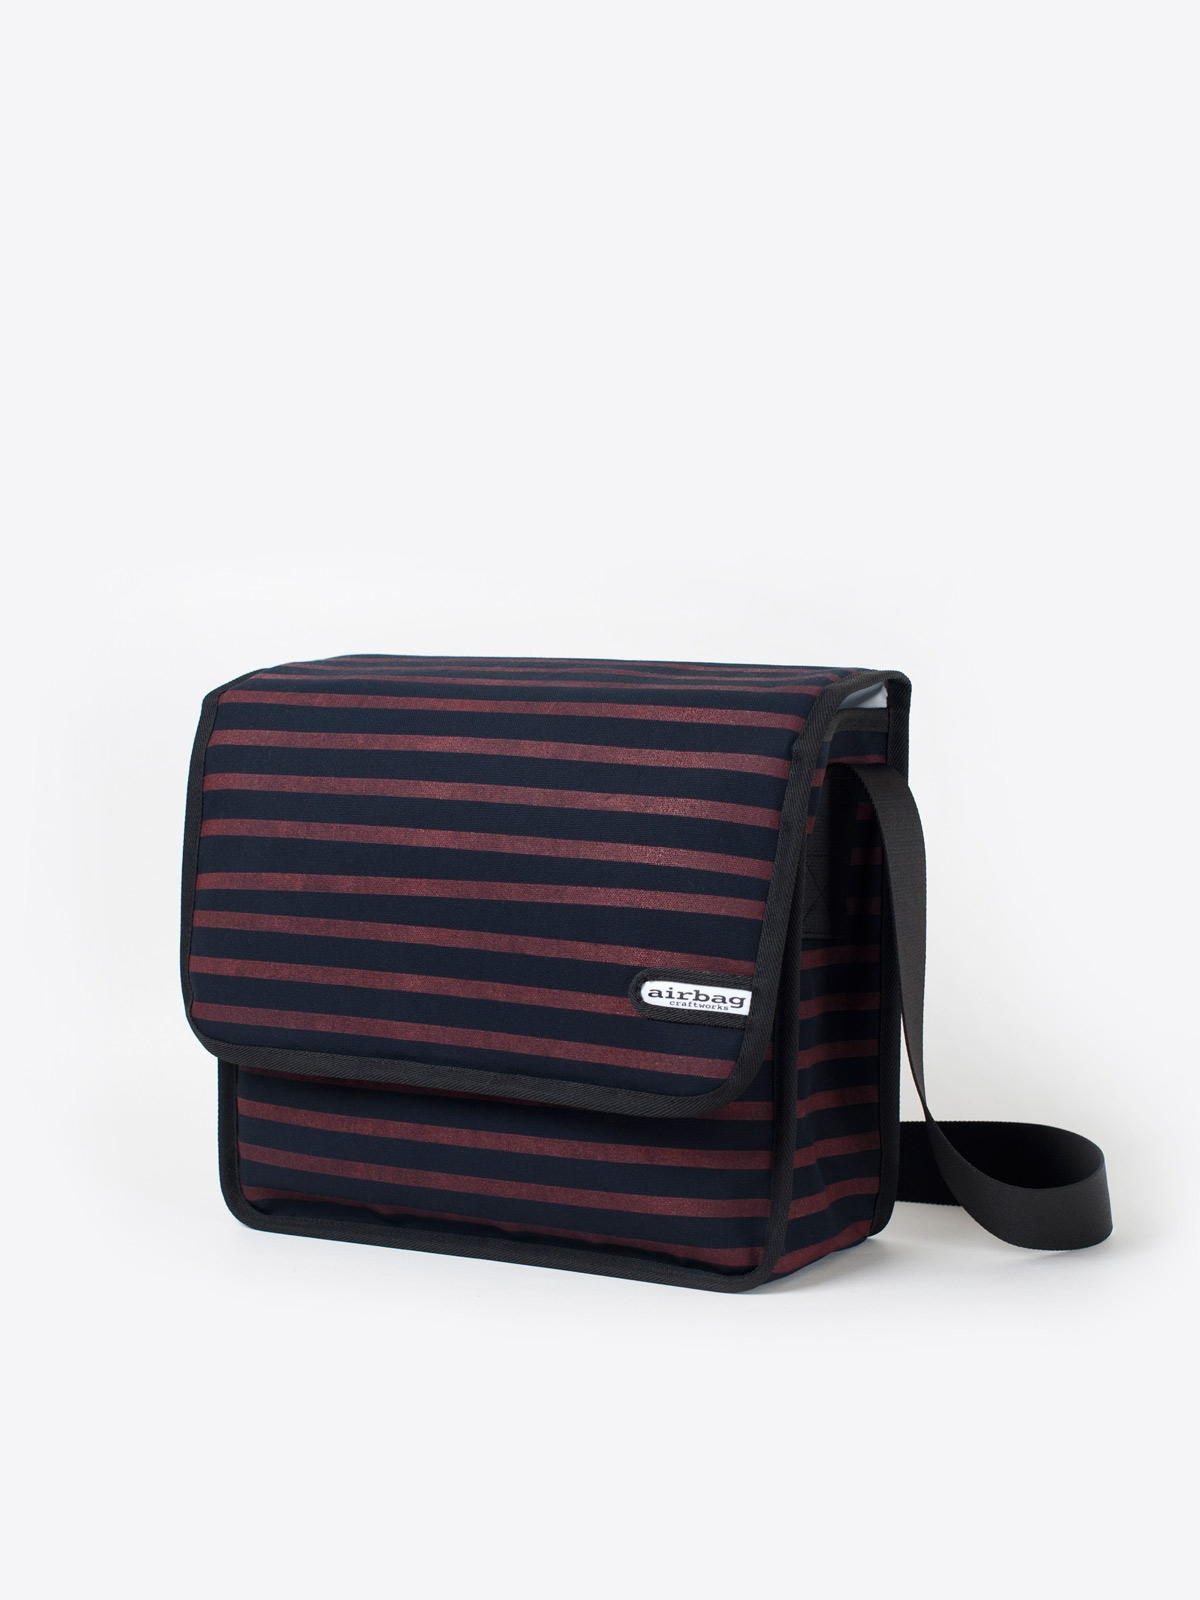 airbag craftworks maritime red navy